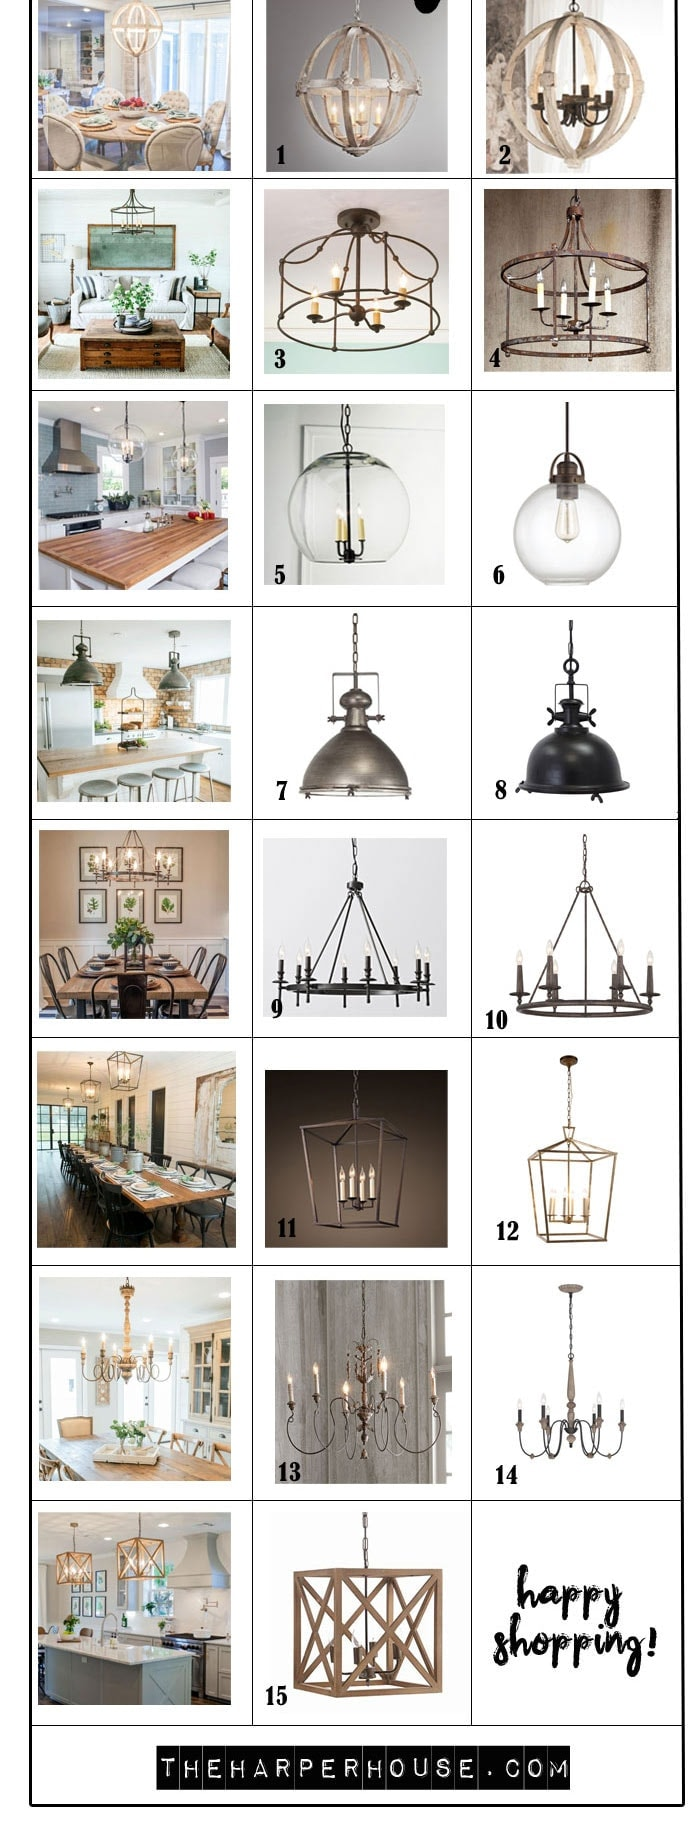 Fixer upper lights find the exact light fixtures used by joanna gaines on fixer upper